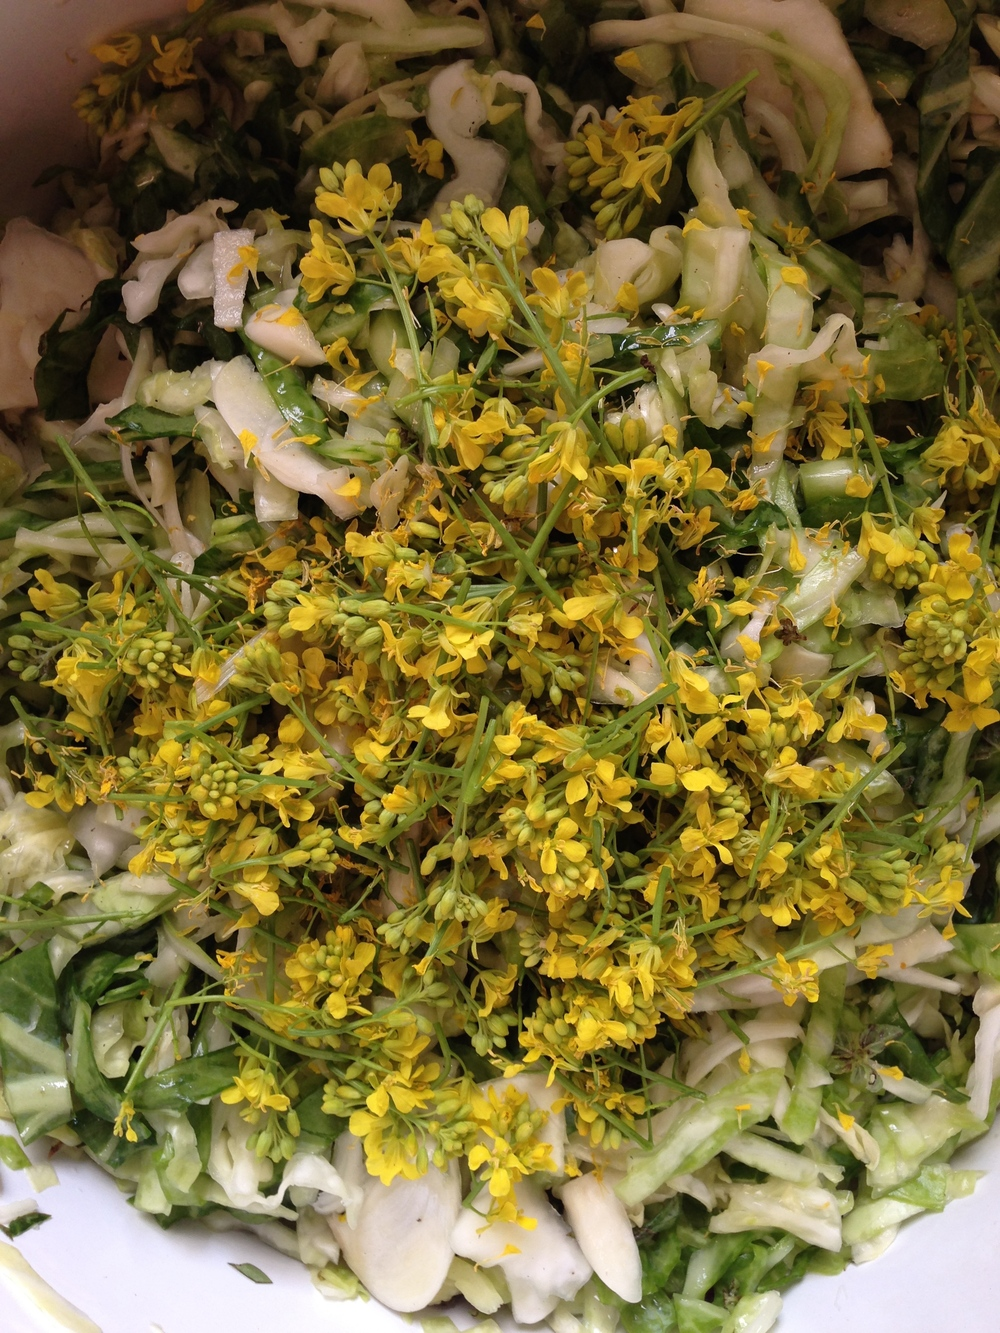 Last but not least! Top of your kraut with some beautiful mustard flowers!